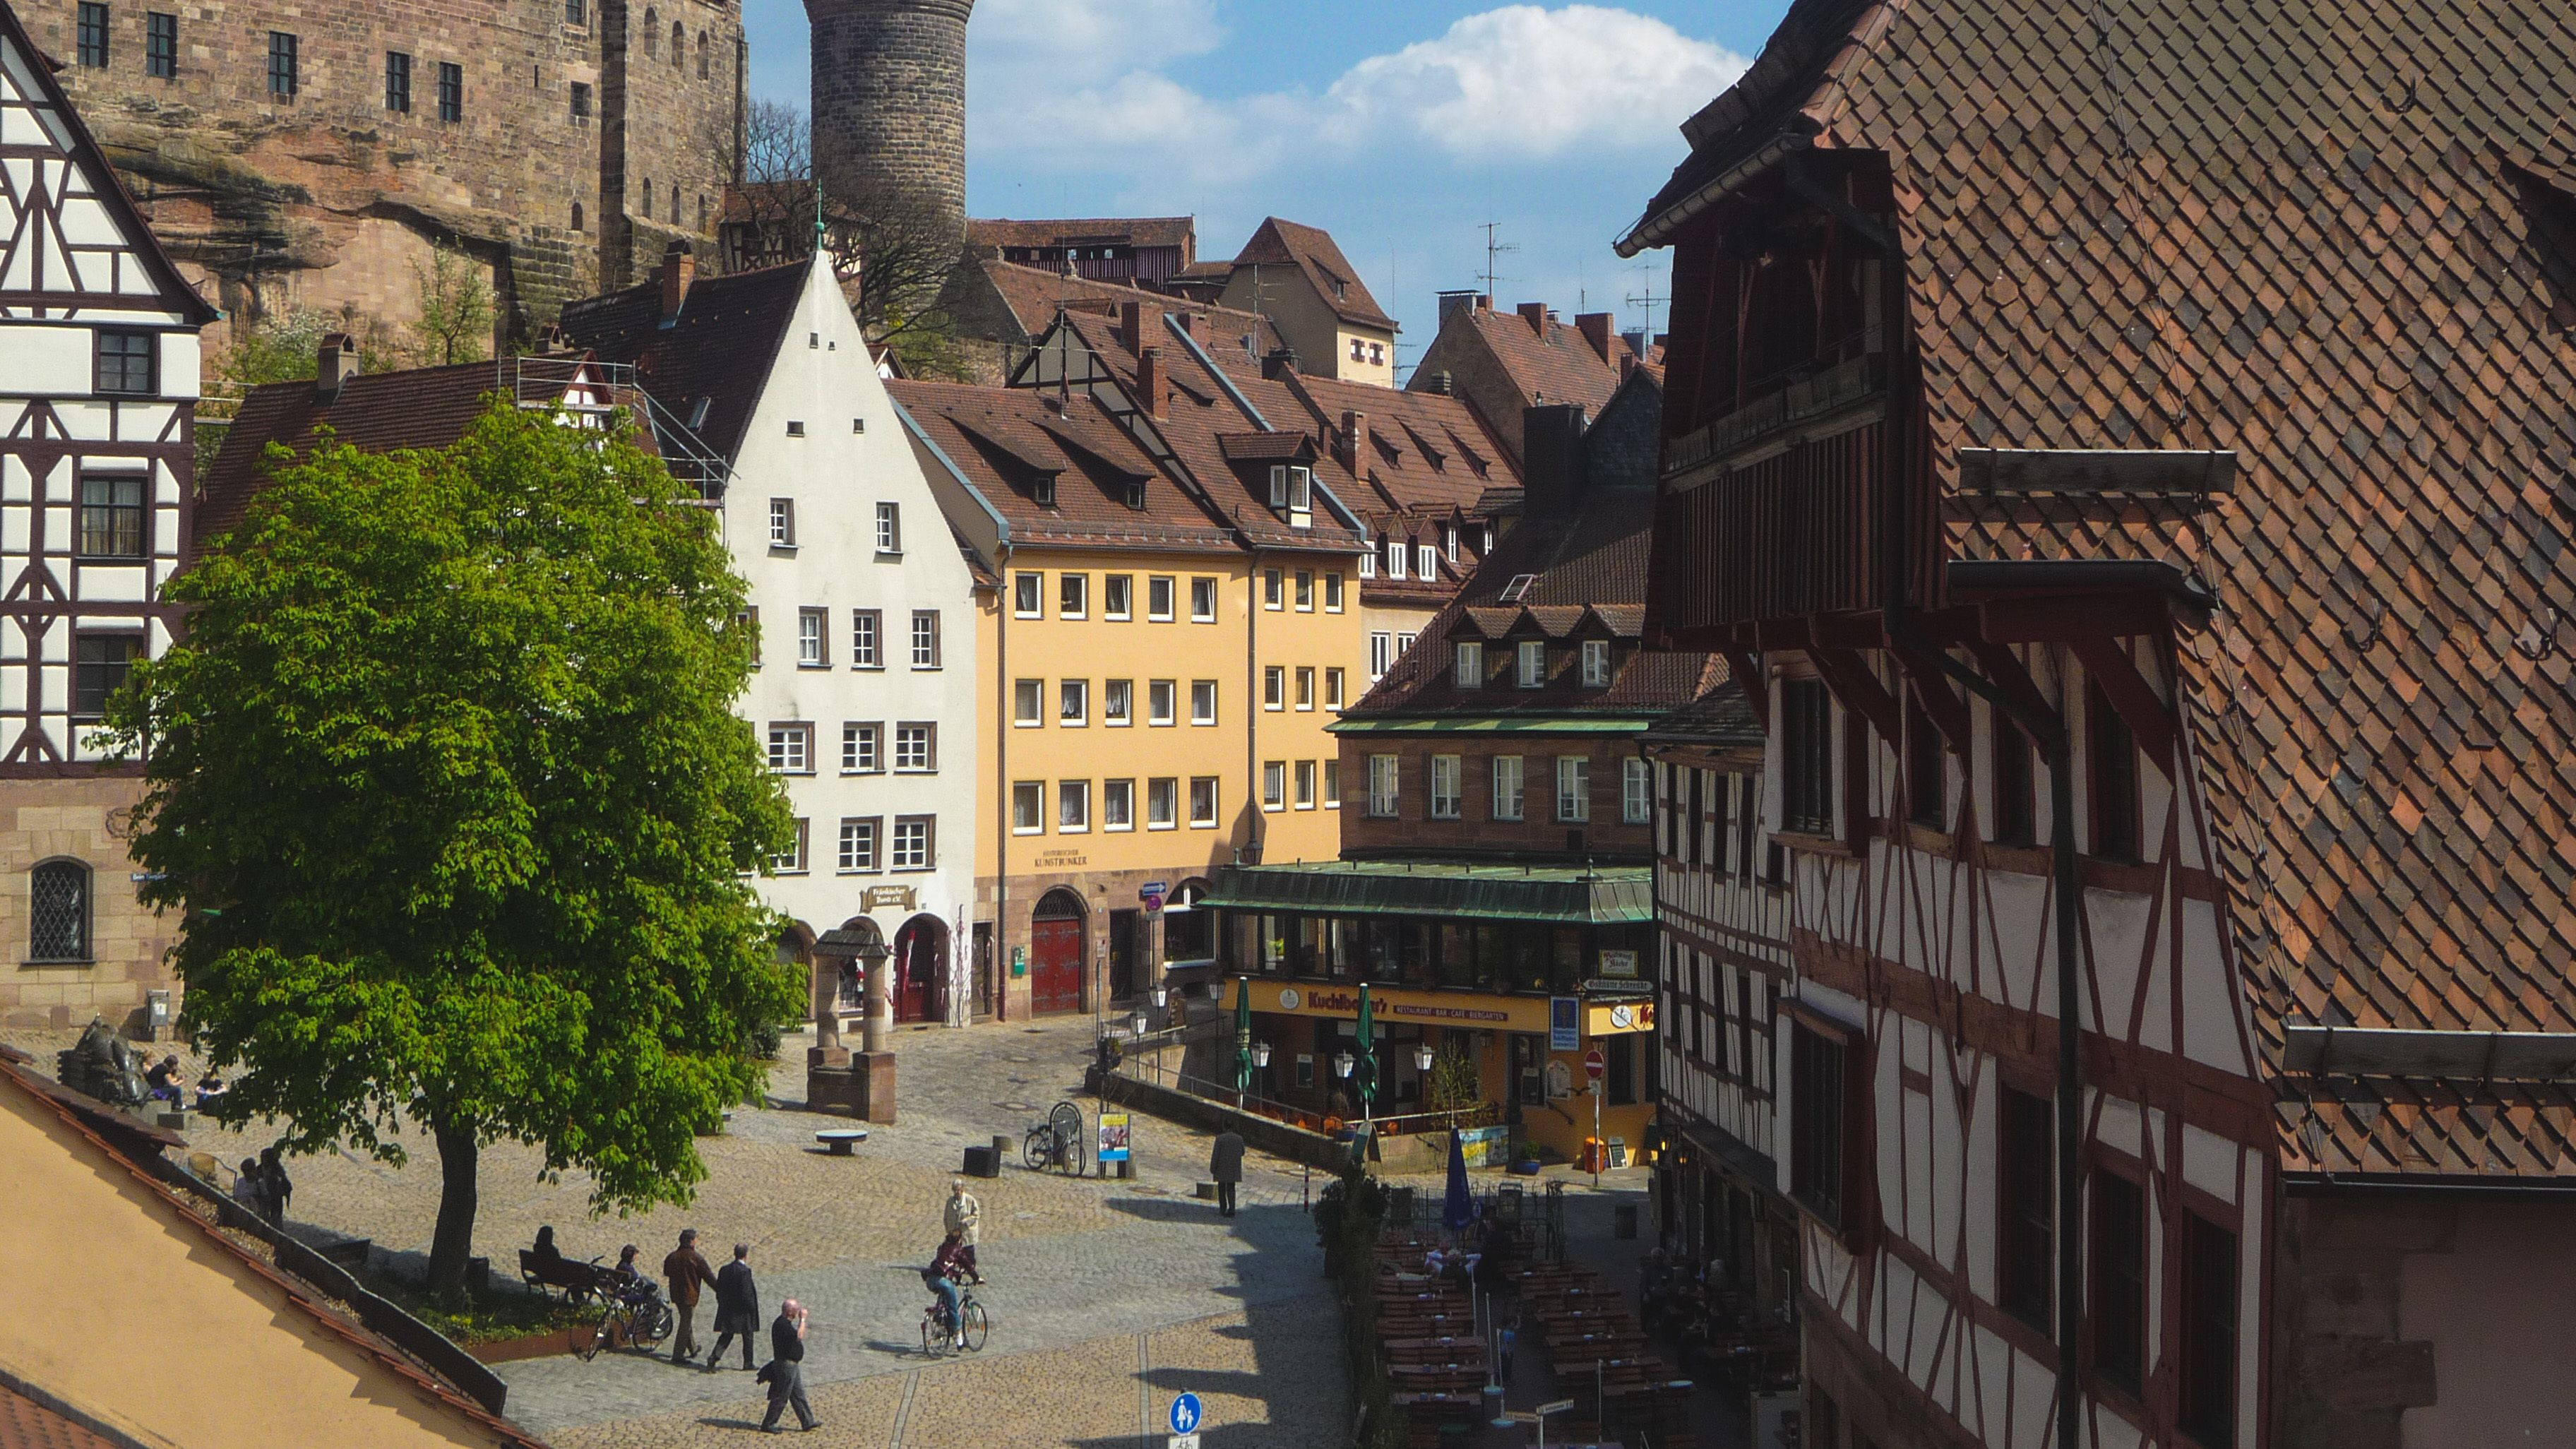 View of local buildings in Old Town Nuremberg.